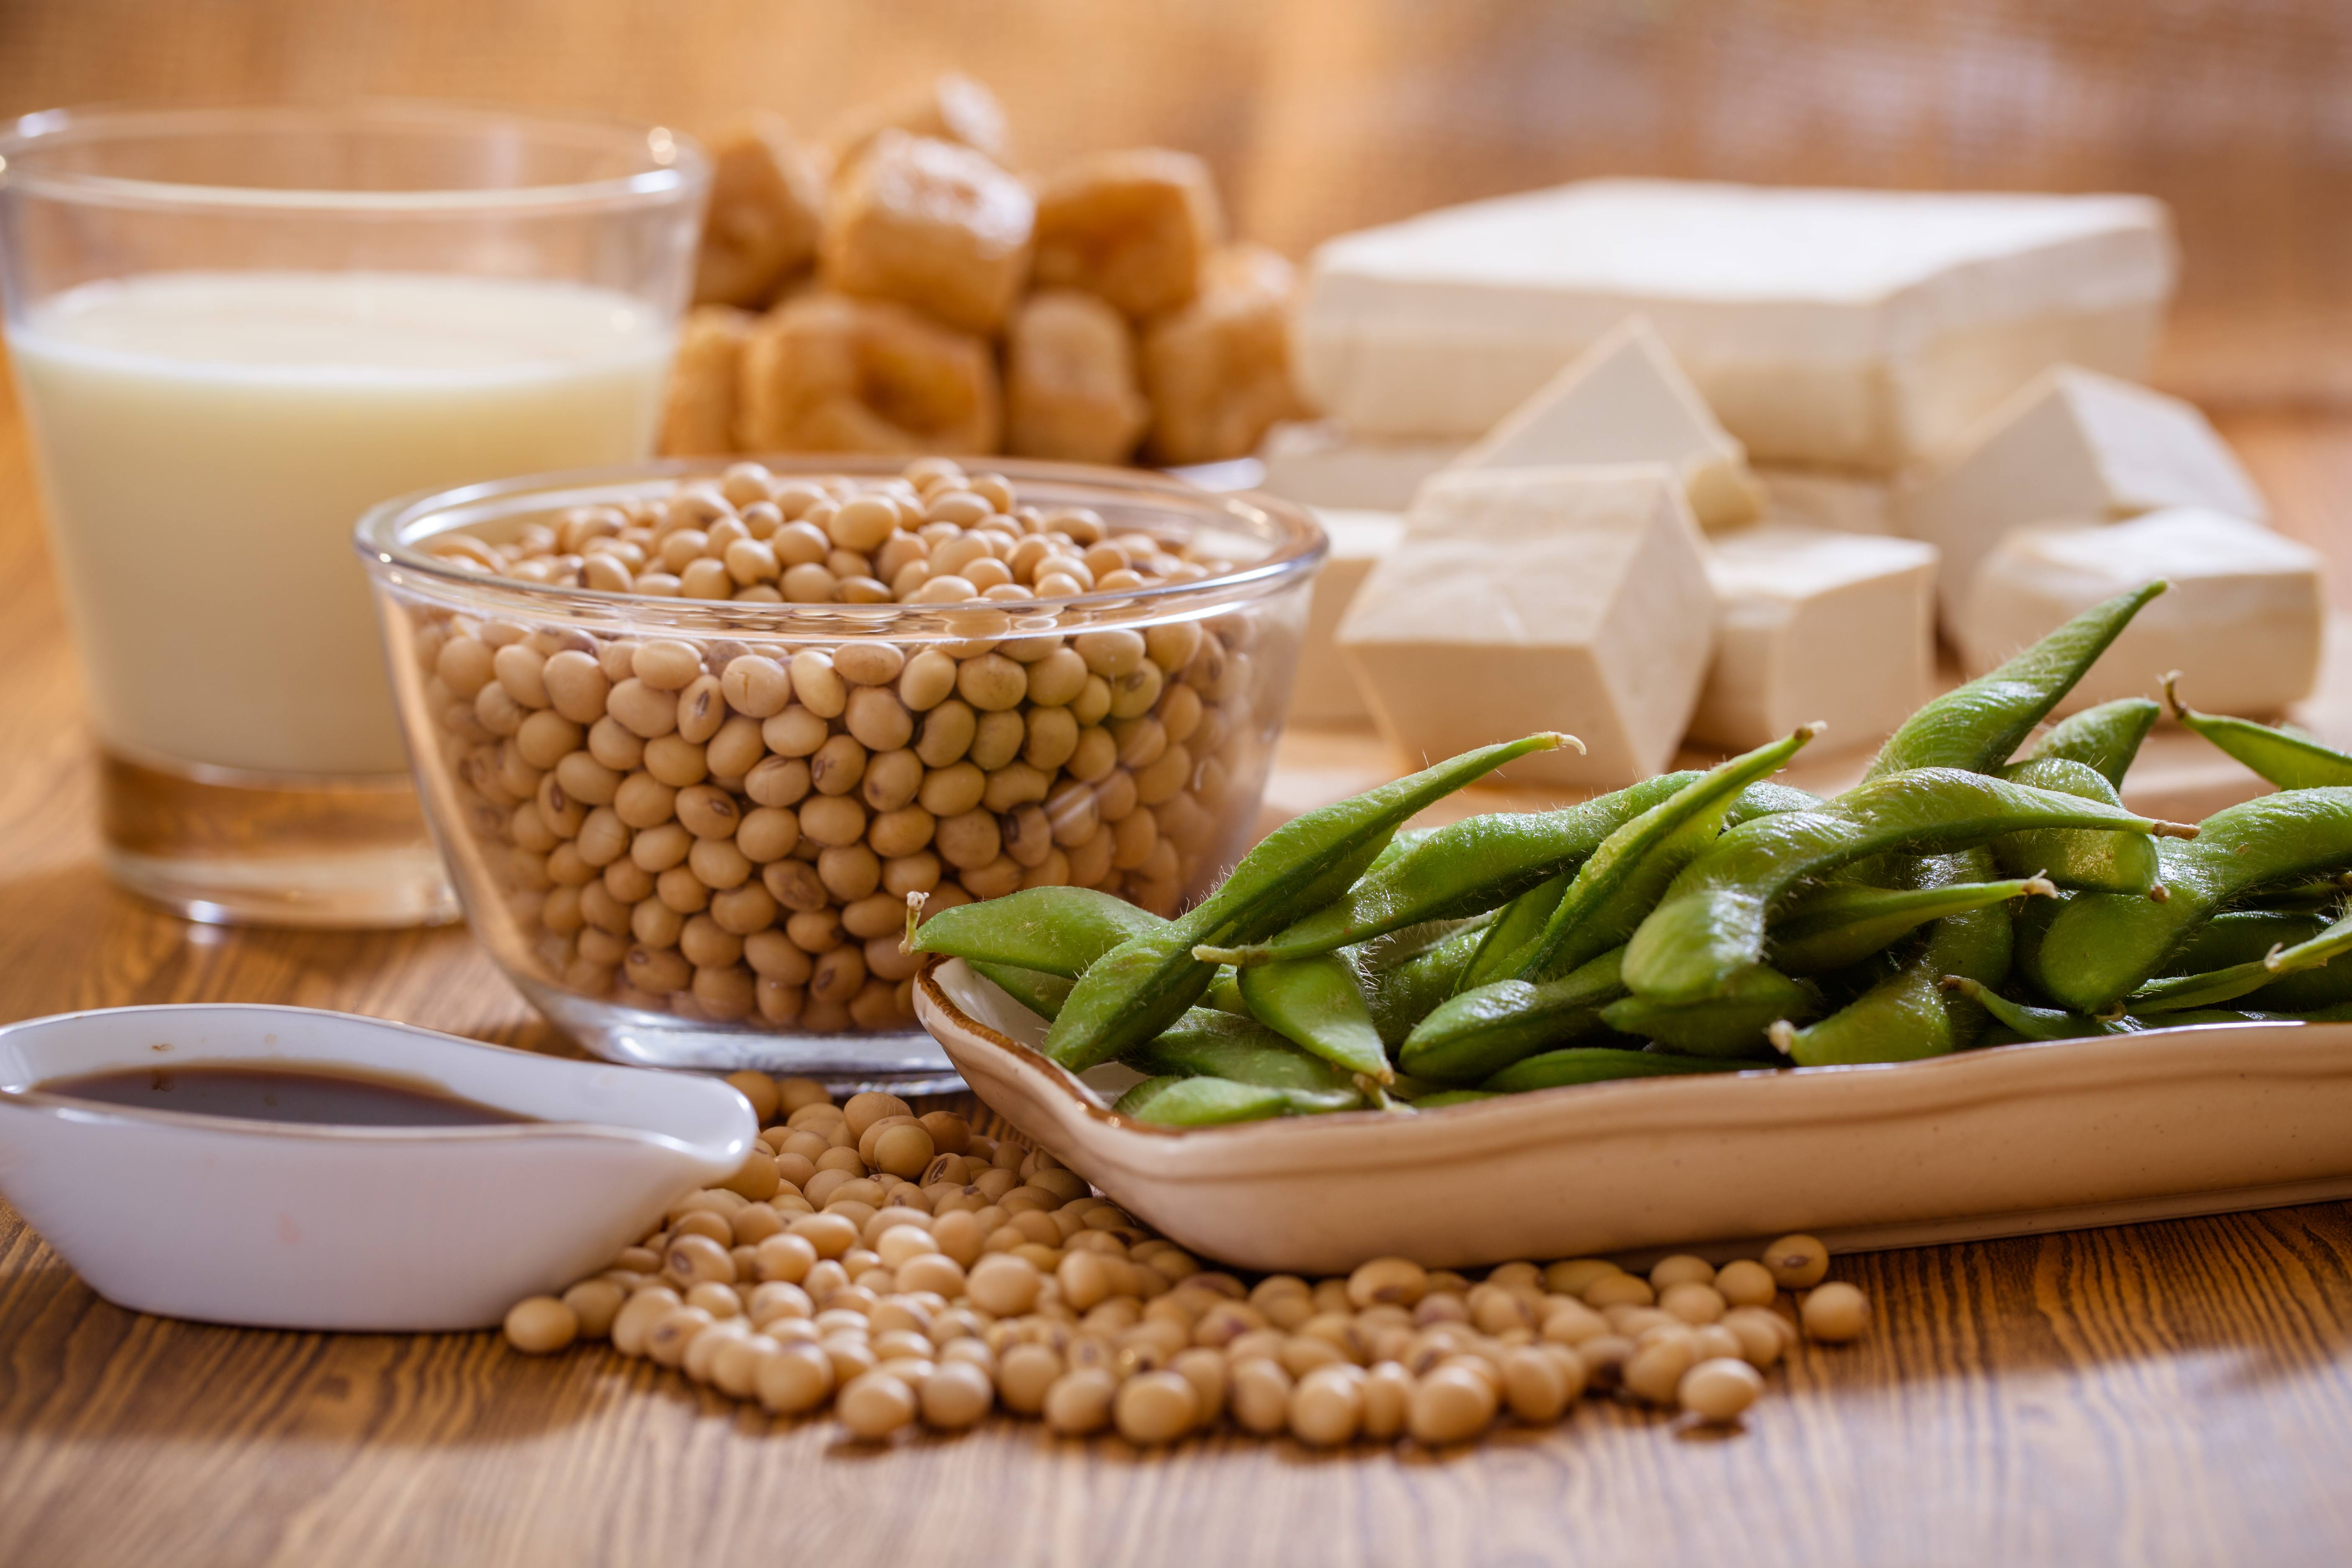 a variety of soy foods, including: soybeans, edamame, soy sauce, tofu, tempeh, soy milk